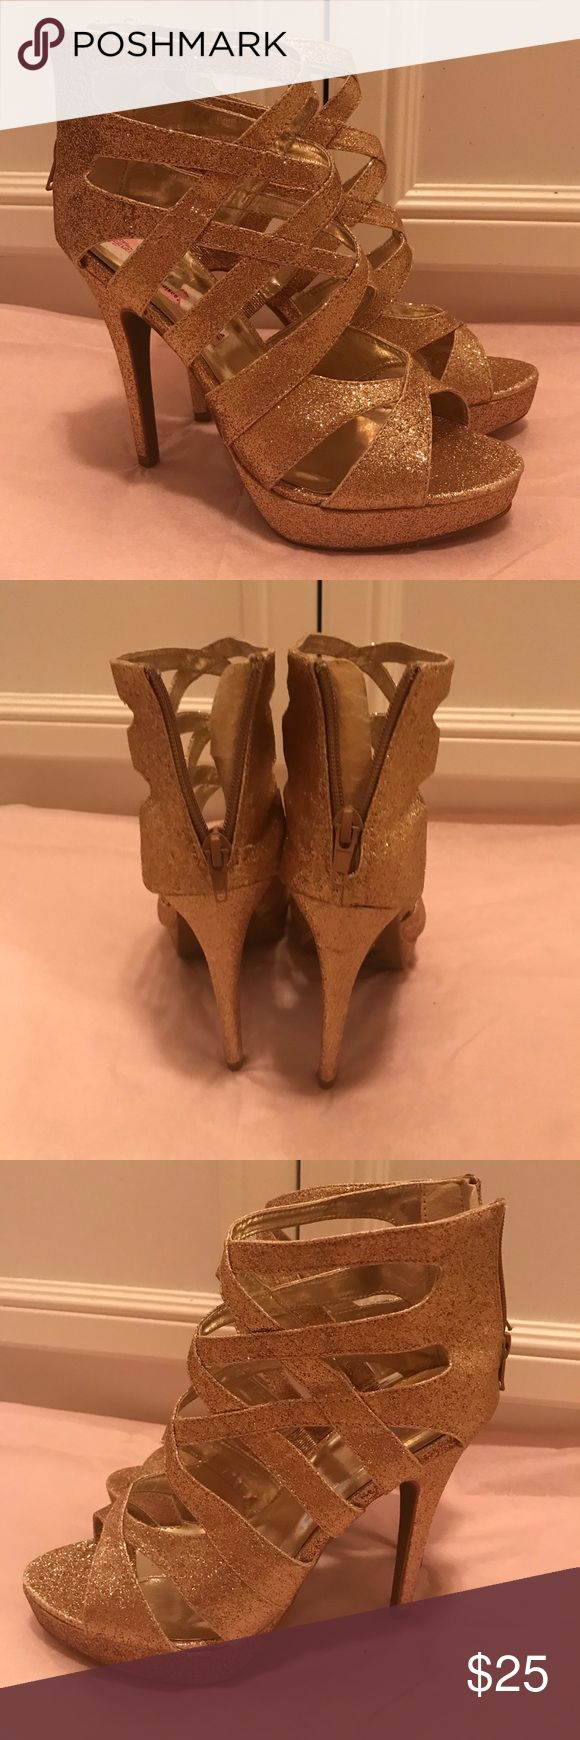 Charlotte Russe Heels Gorgeous gold glittery heels. Great for a night out. Charlotte Russe Shoes Heels